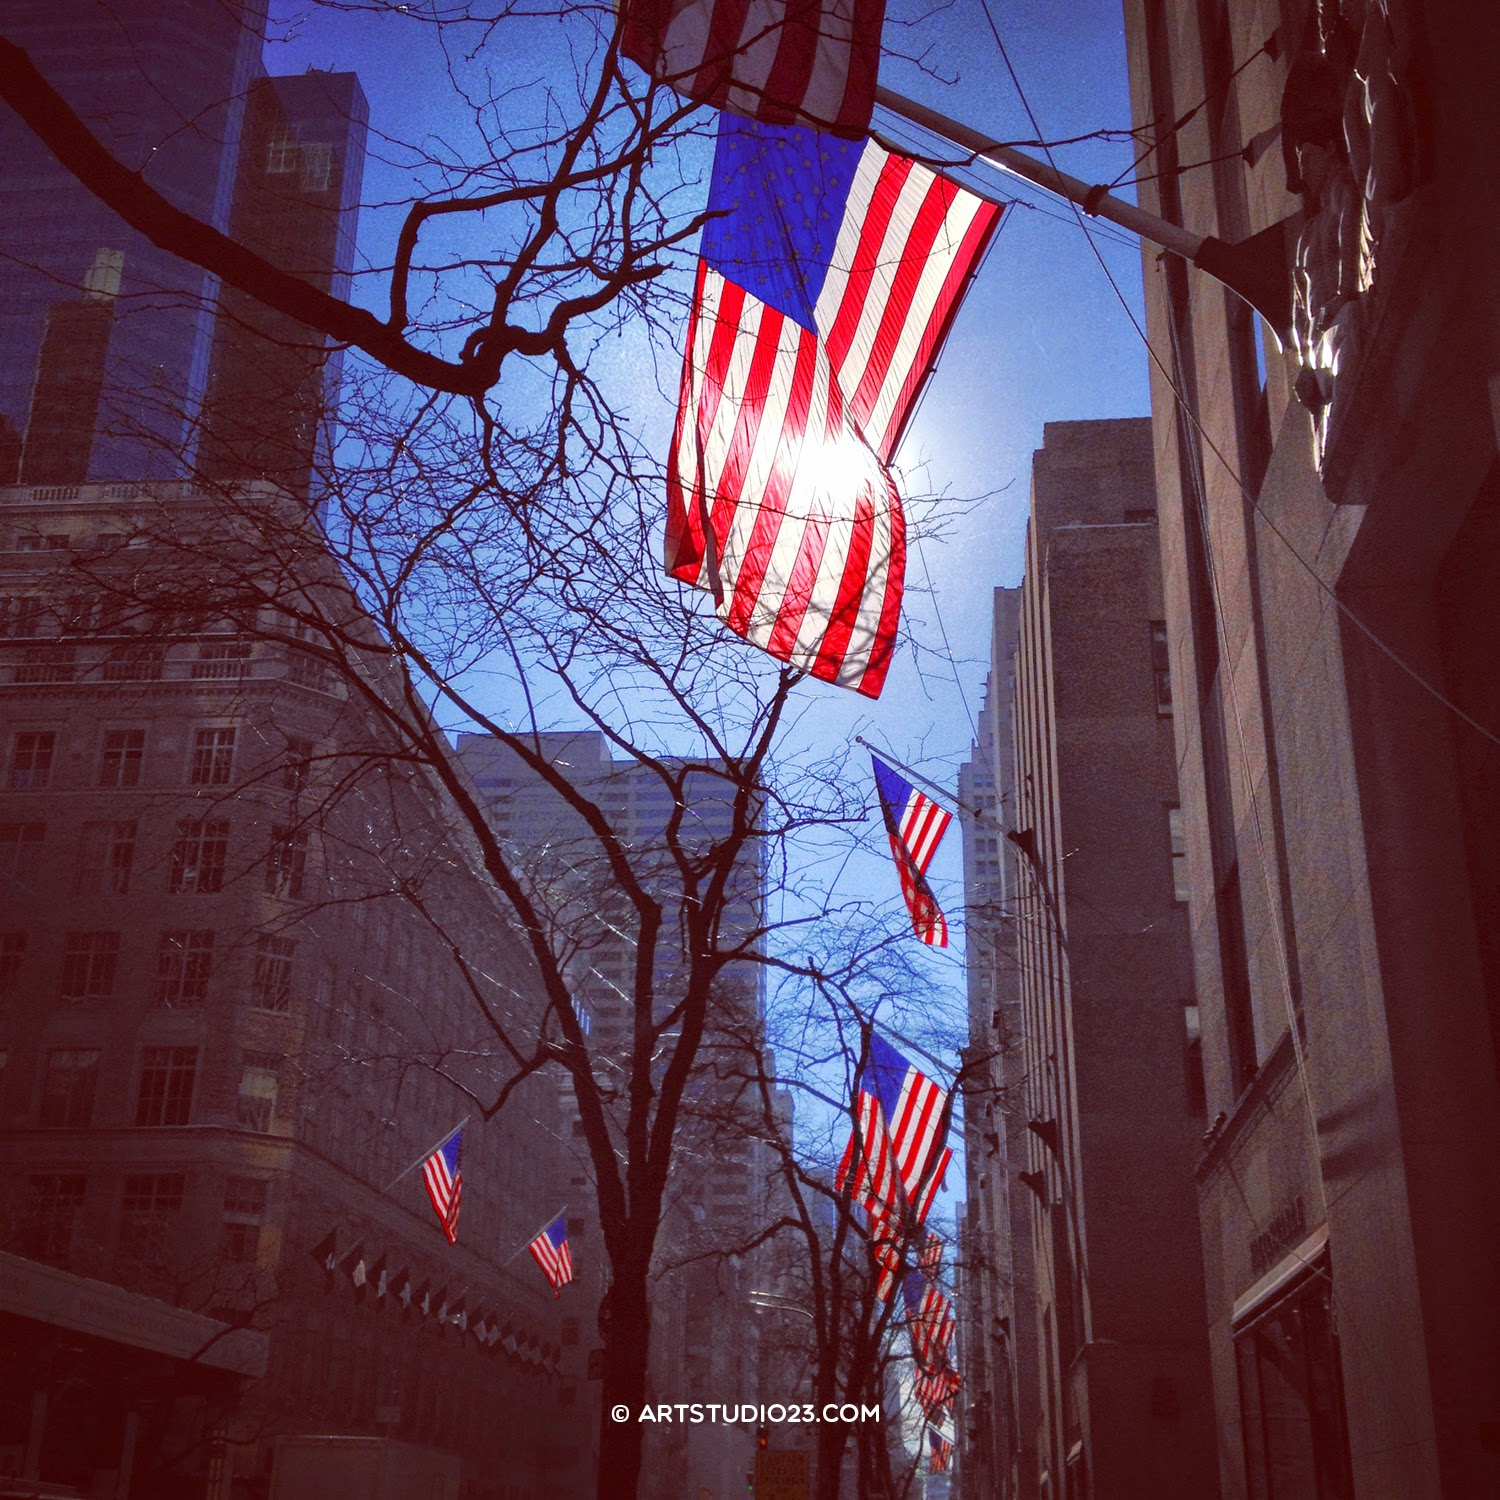 Winter sun lighting American flags at 5th Avenue, NYC - Melanie E. Rijkers